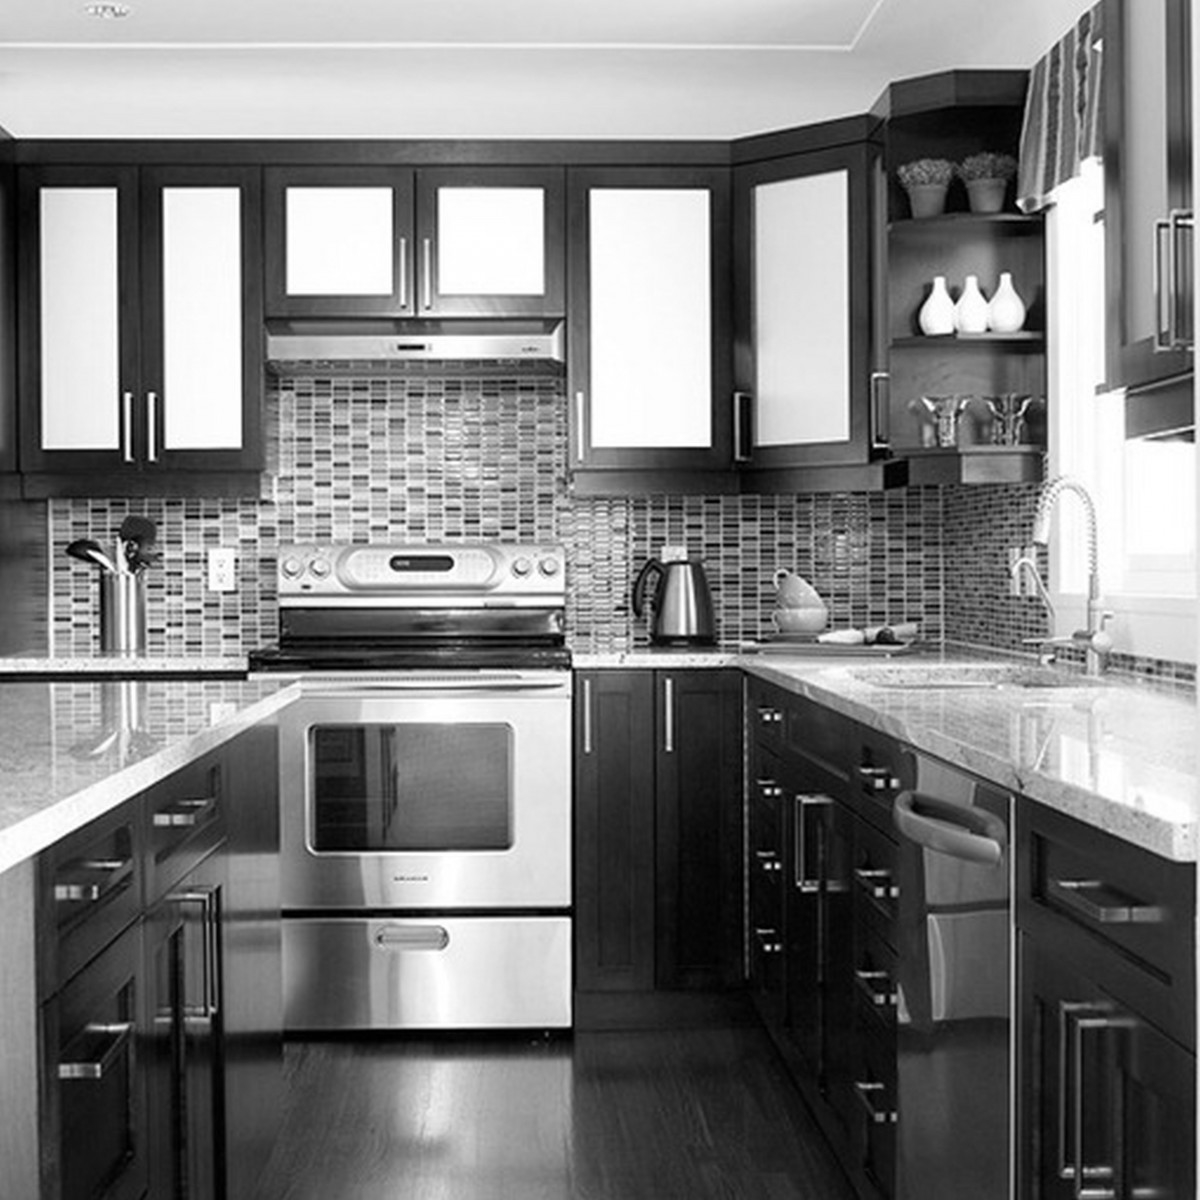 Kitchen Appliance Packages Brisbane Homely Kitchen Cabinet With Stainless Steel Kitchen Appliance Home Depot Microwave Fridge Freezer Draining Board Oven Coffee Maker Kitchen Faucet Cook (Image 8 of 38)